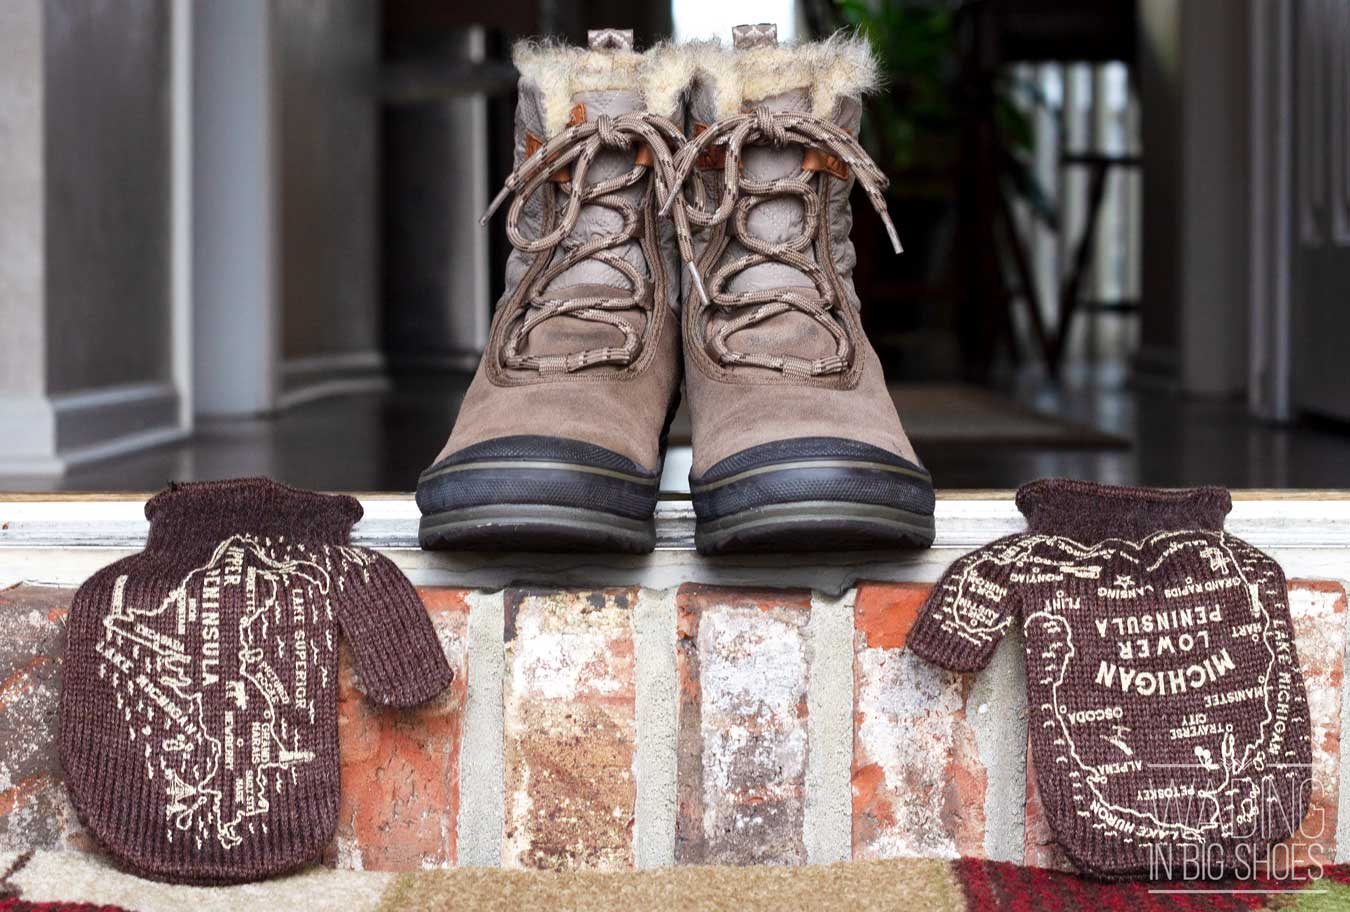 Getting Cozy At Home With Michigan Mittens (via Wading in Big Shoes)